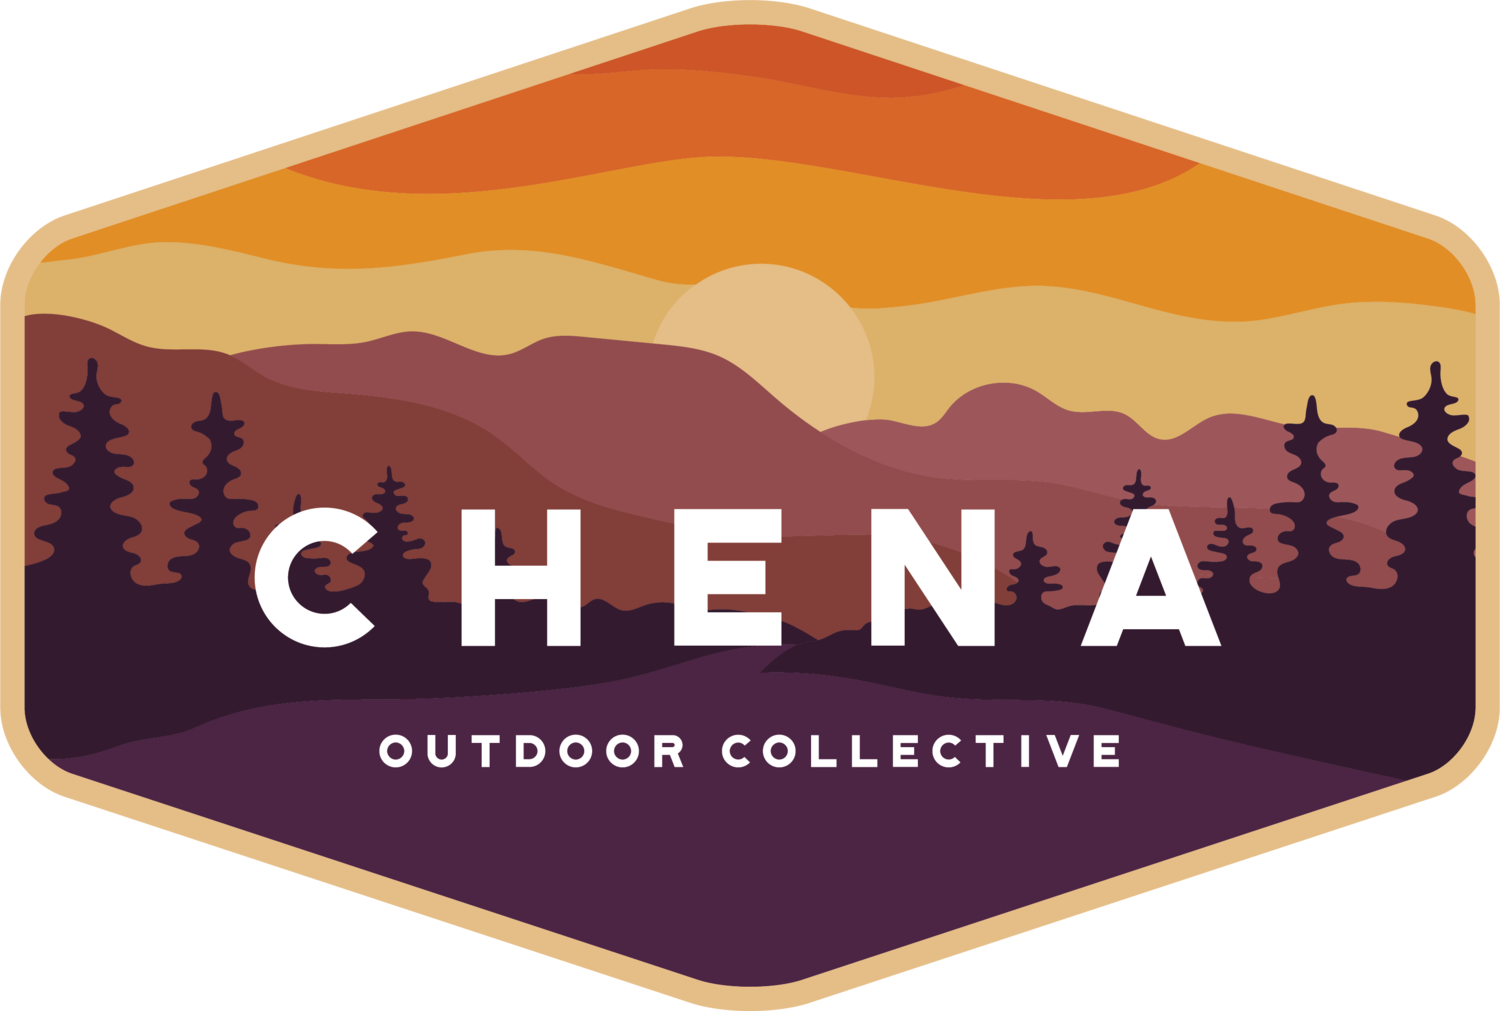 Chena Outdoor Collective